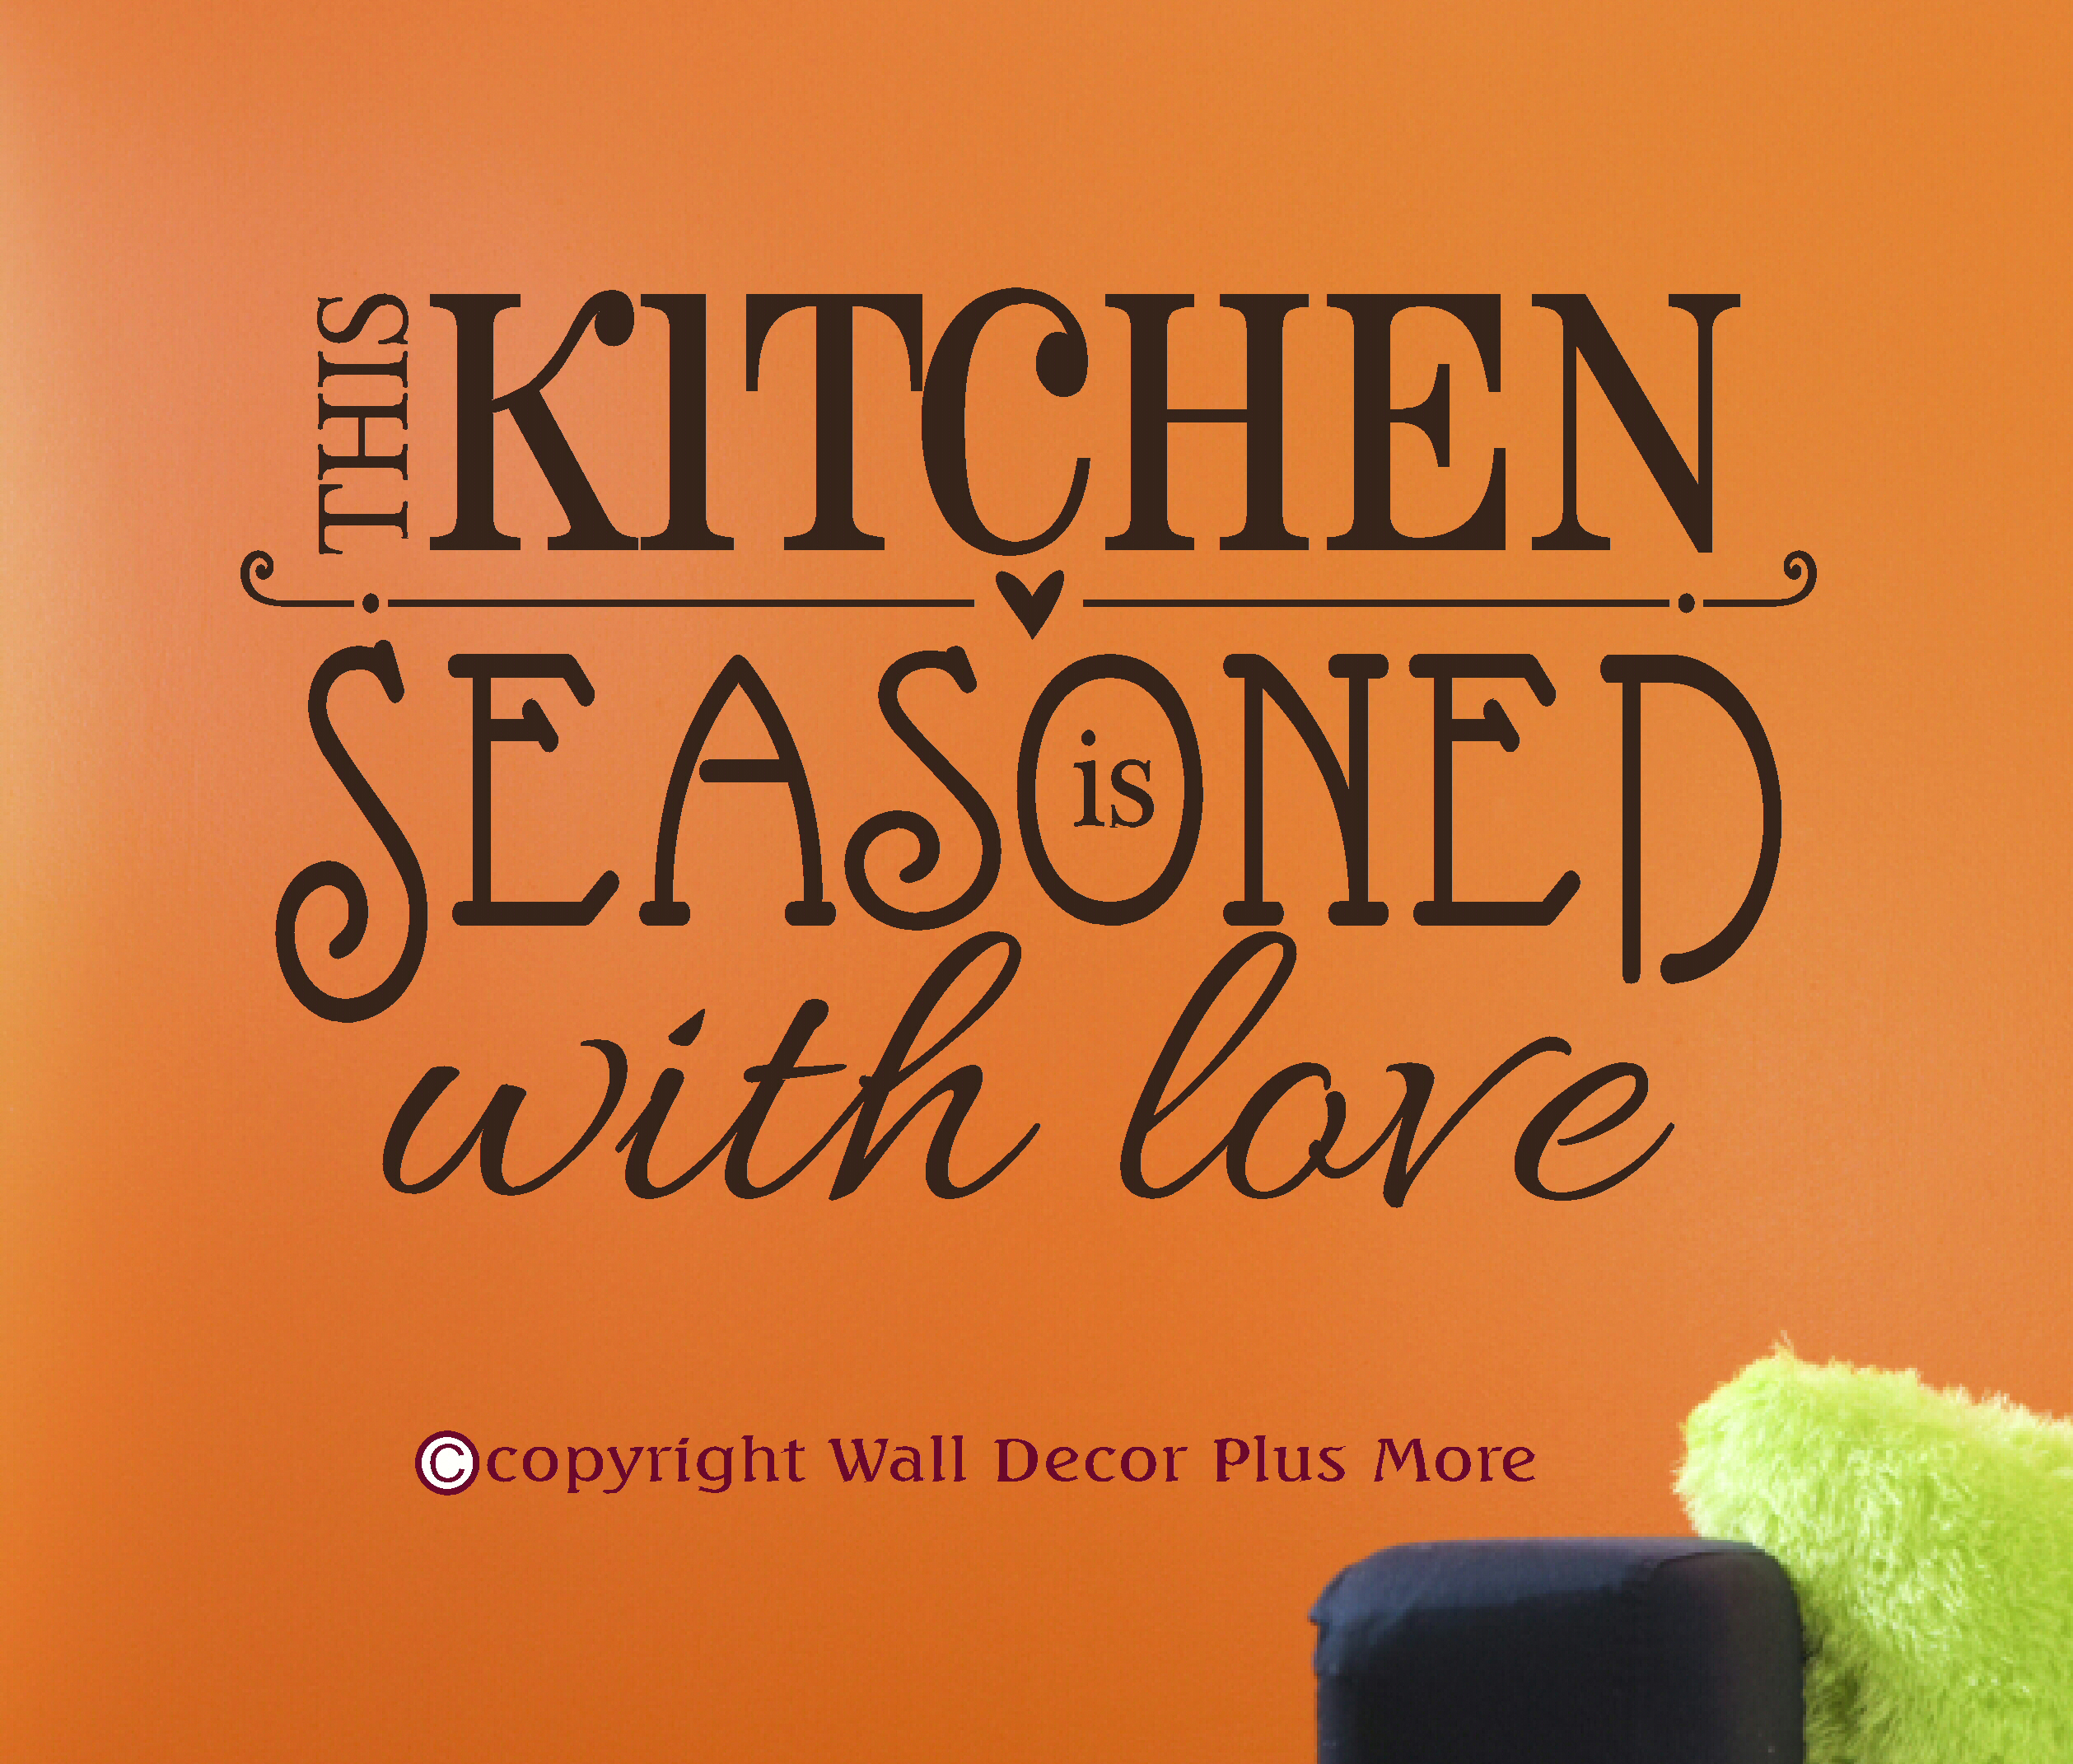 Wall Decor Plus More : Love your kitchen and it will you back wall decor